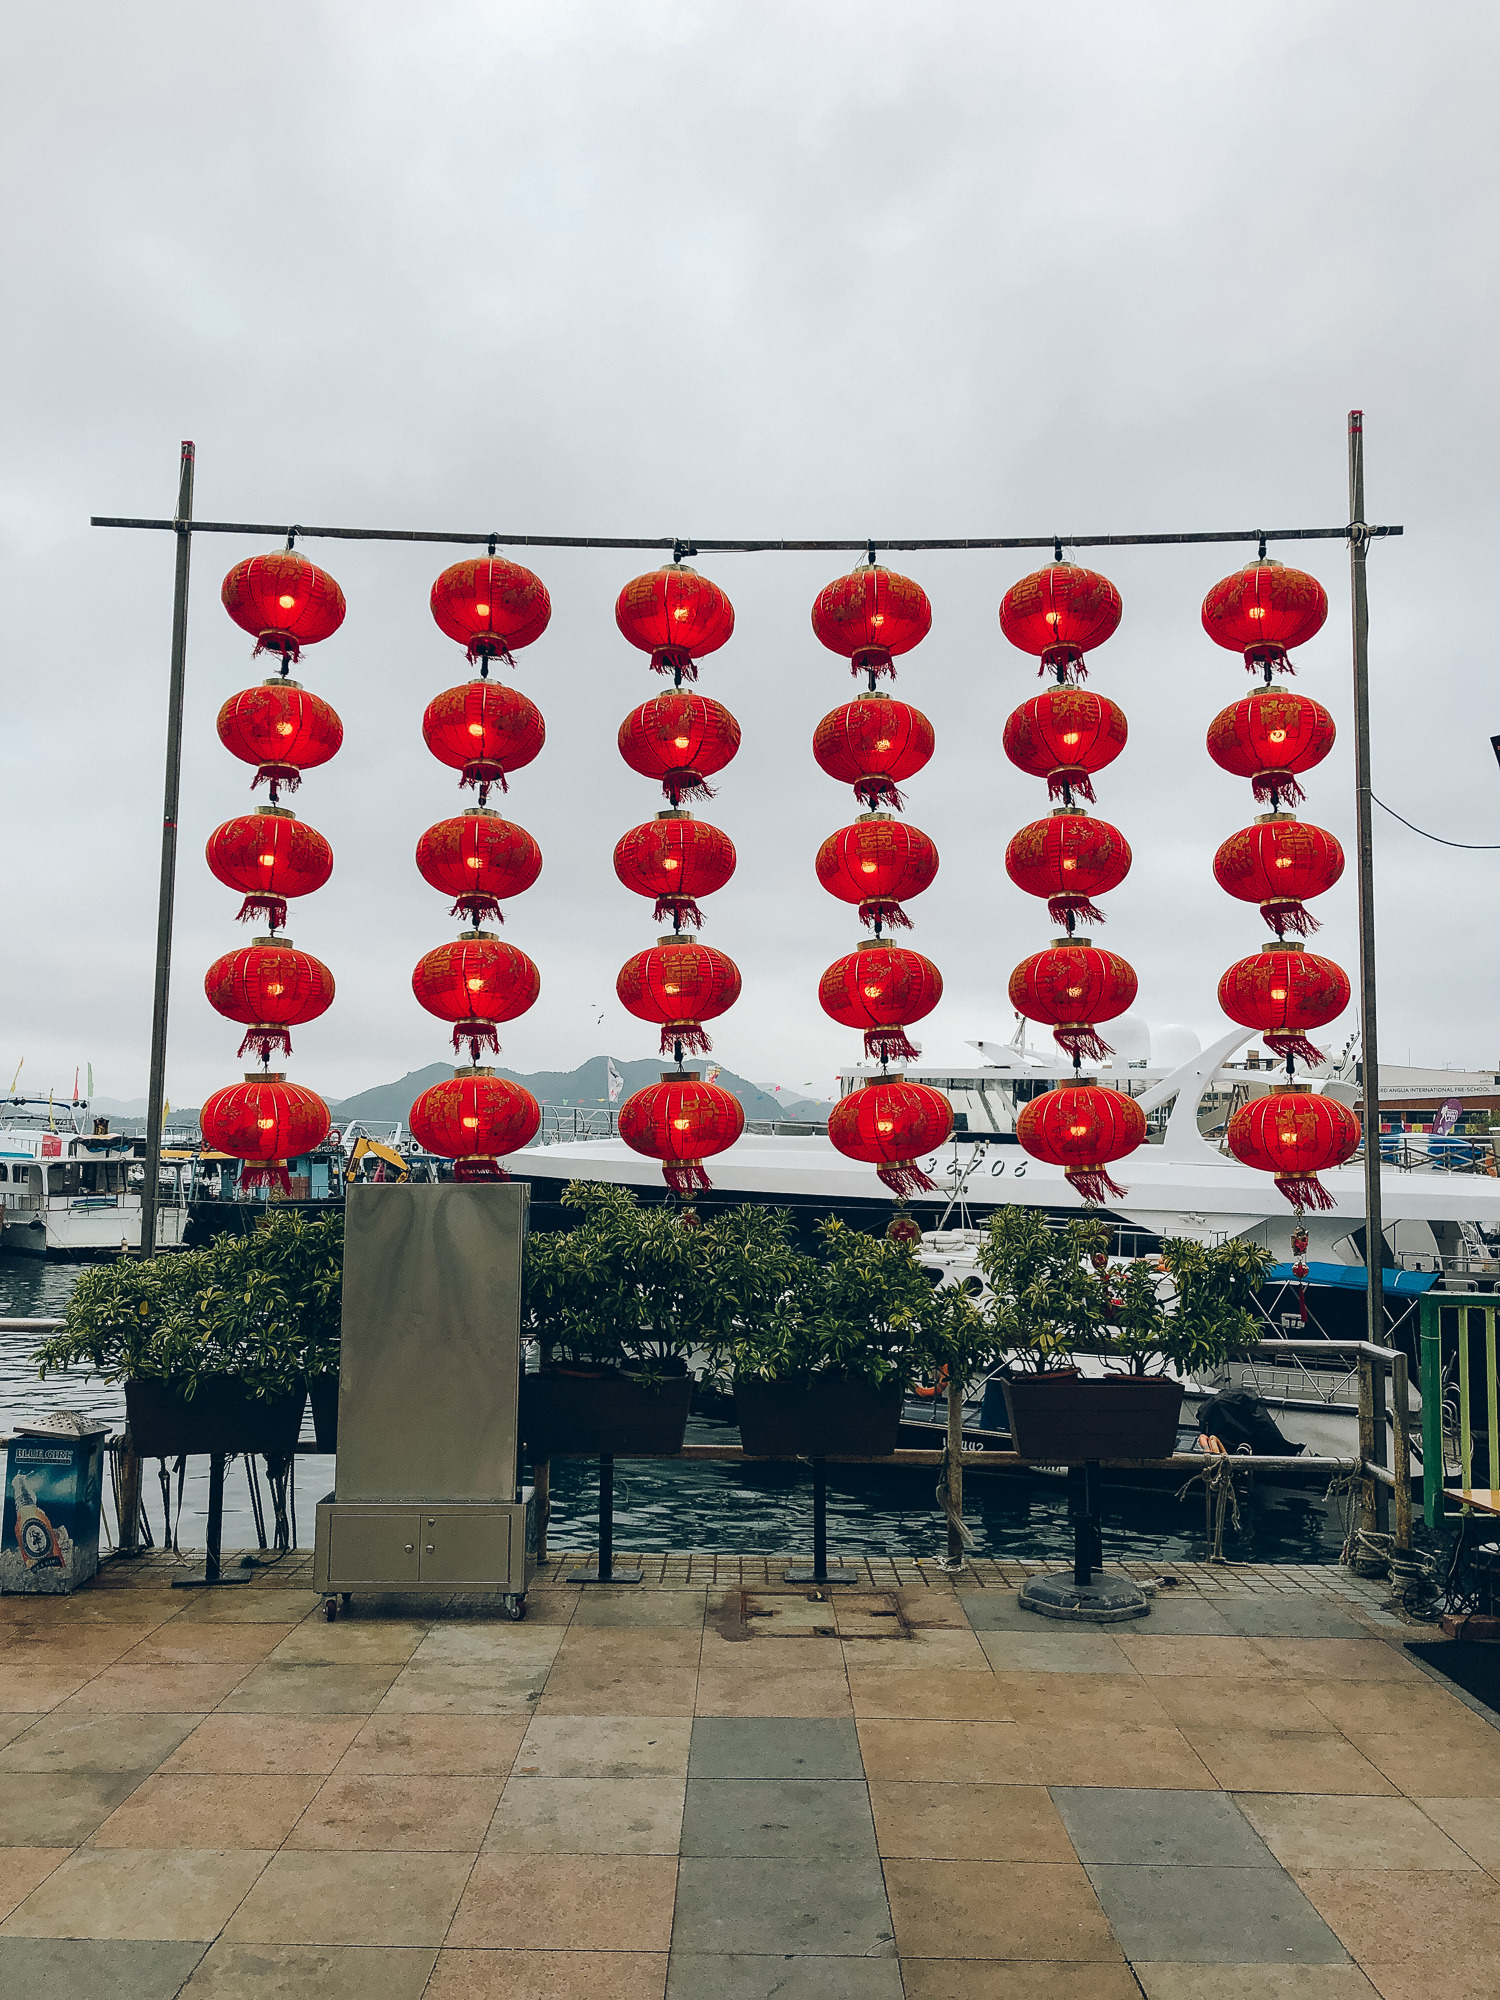 Lanterns by the sea in Sai Kung.